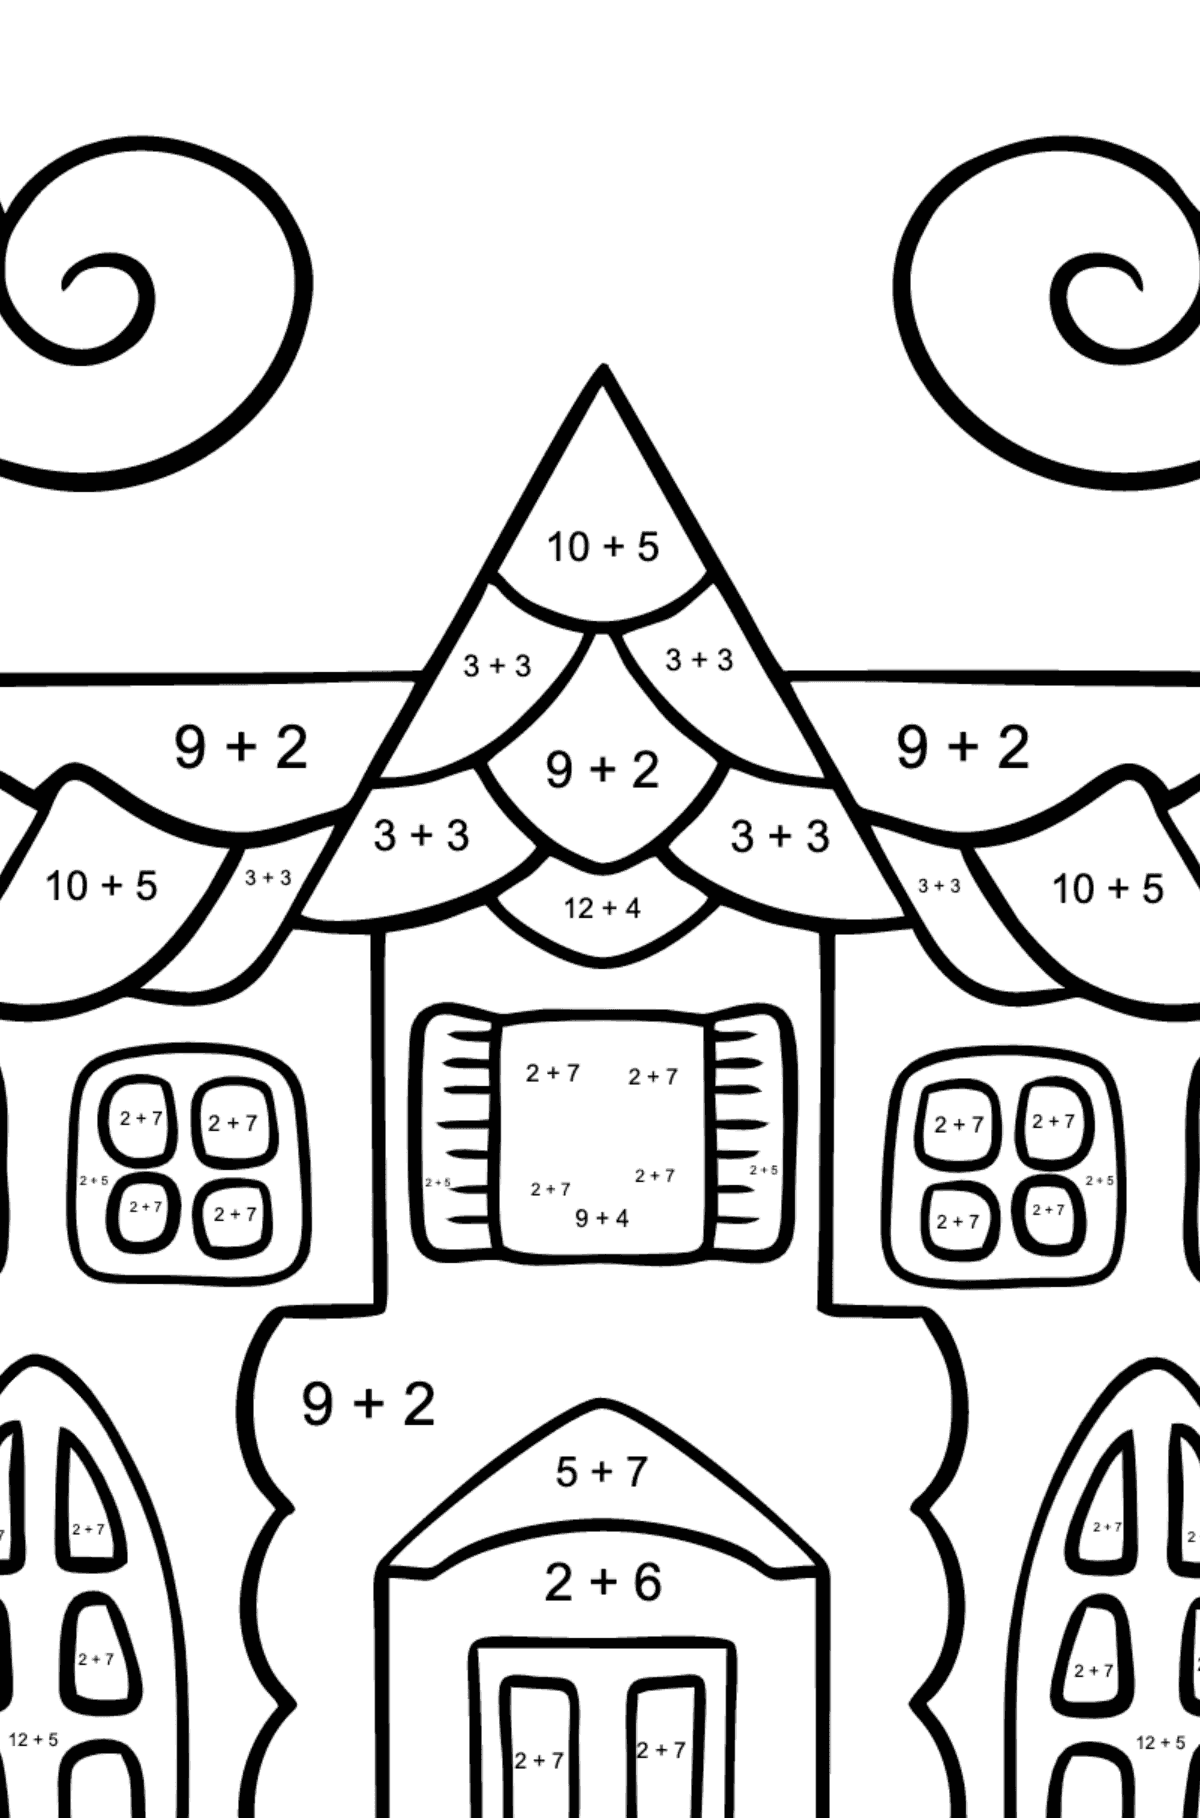 Complex Coloring Page - A House in an Enchanted Kingdom - Math Coloring - Addition for Children